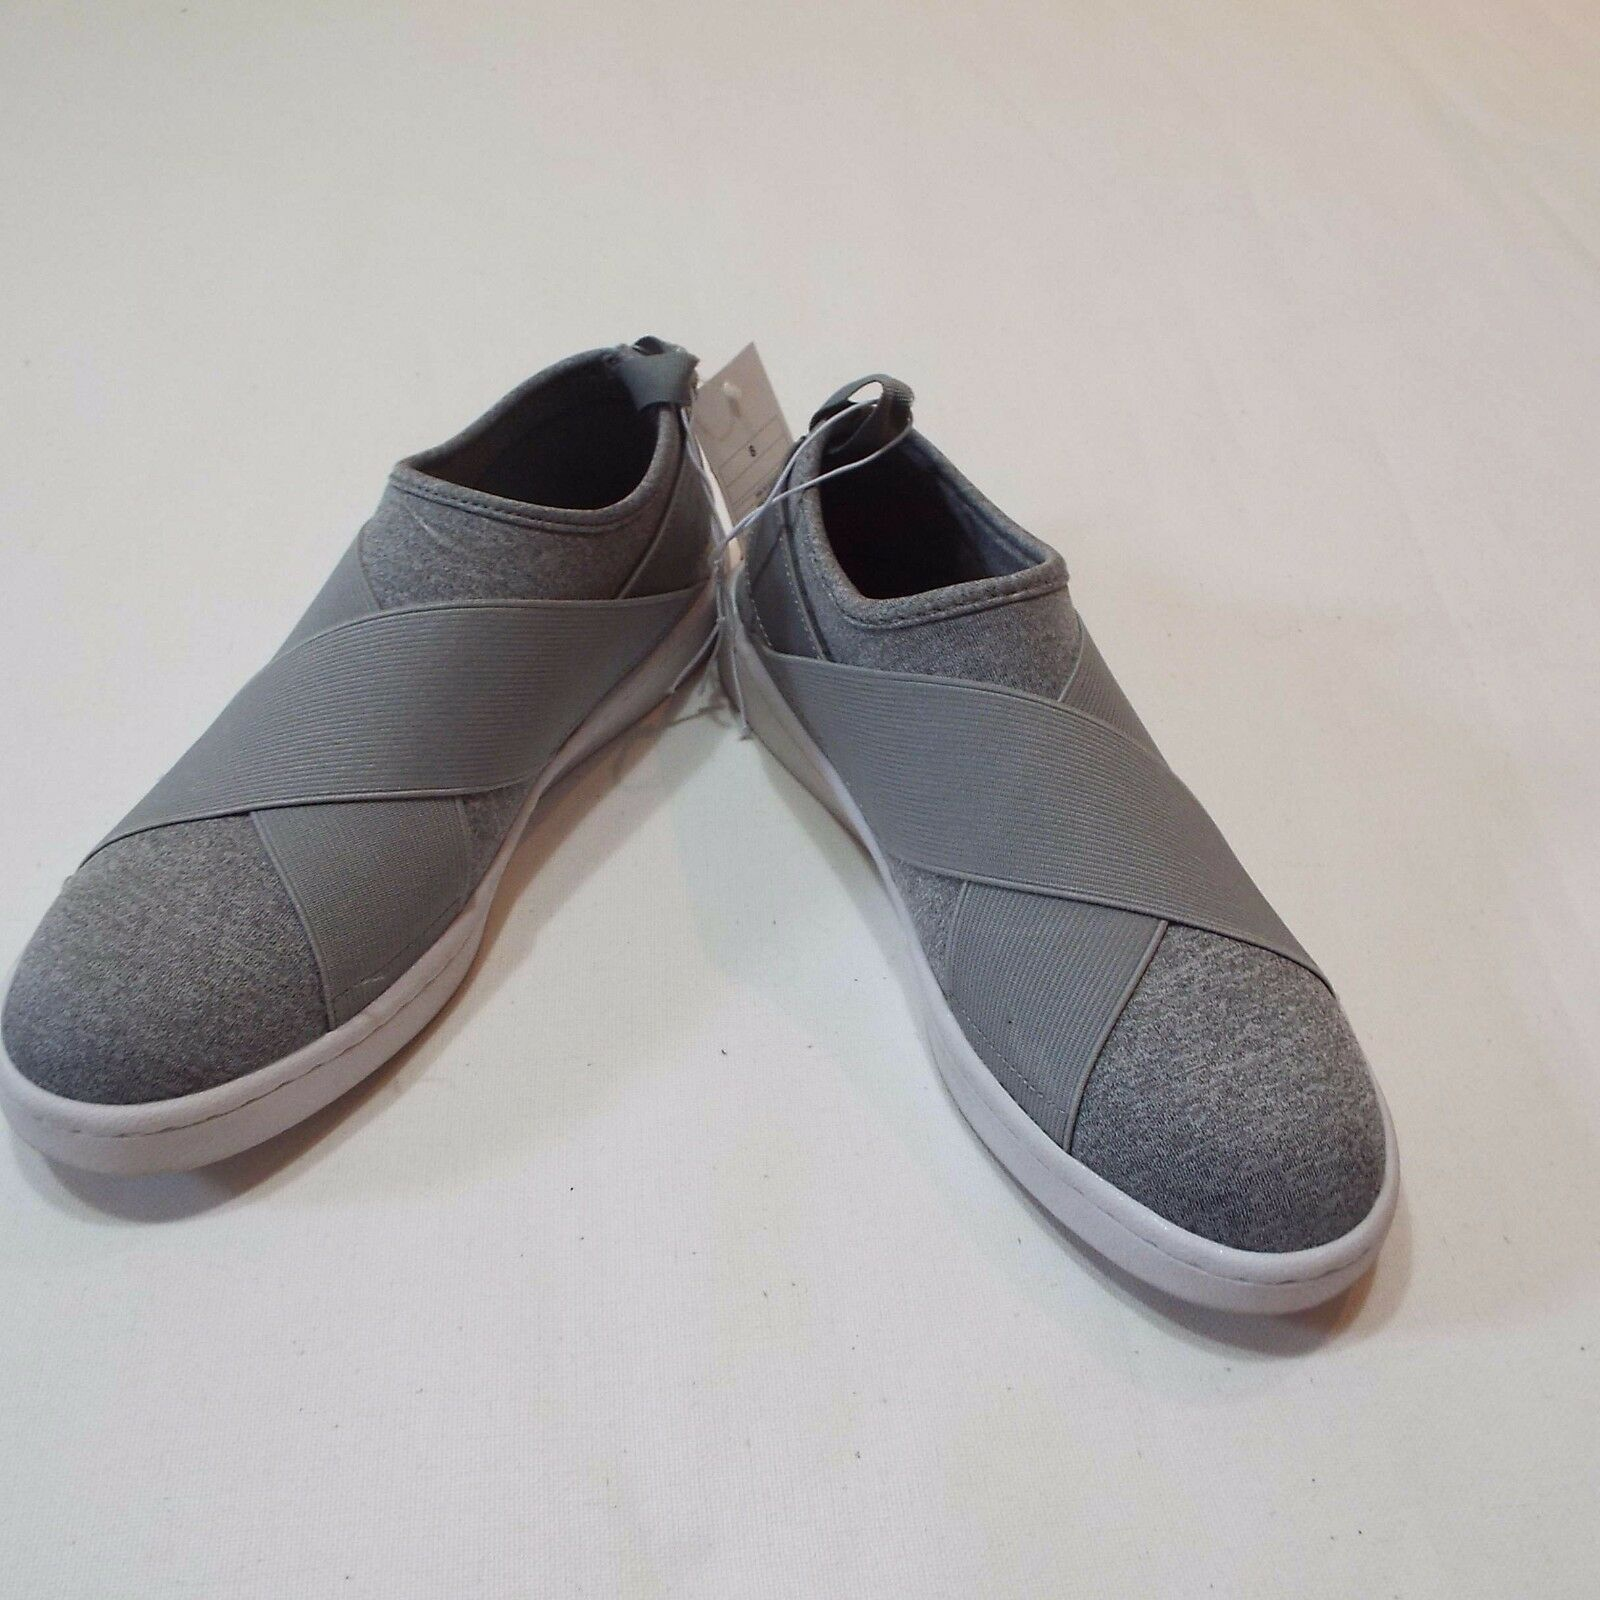 Women gray fabric casual slip on shoes 8 by Mossimo free ship